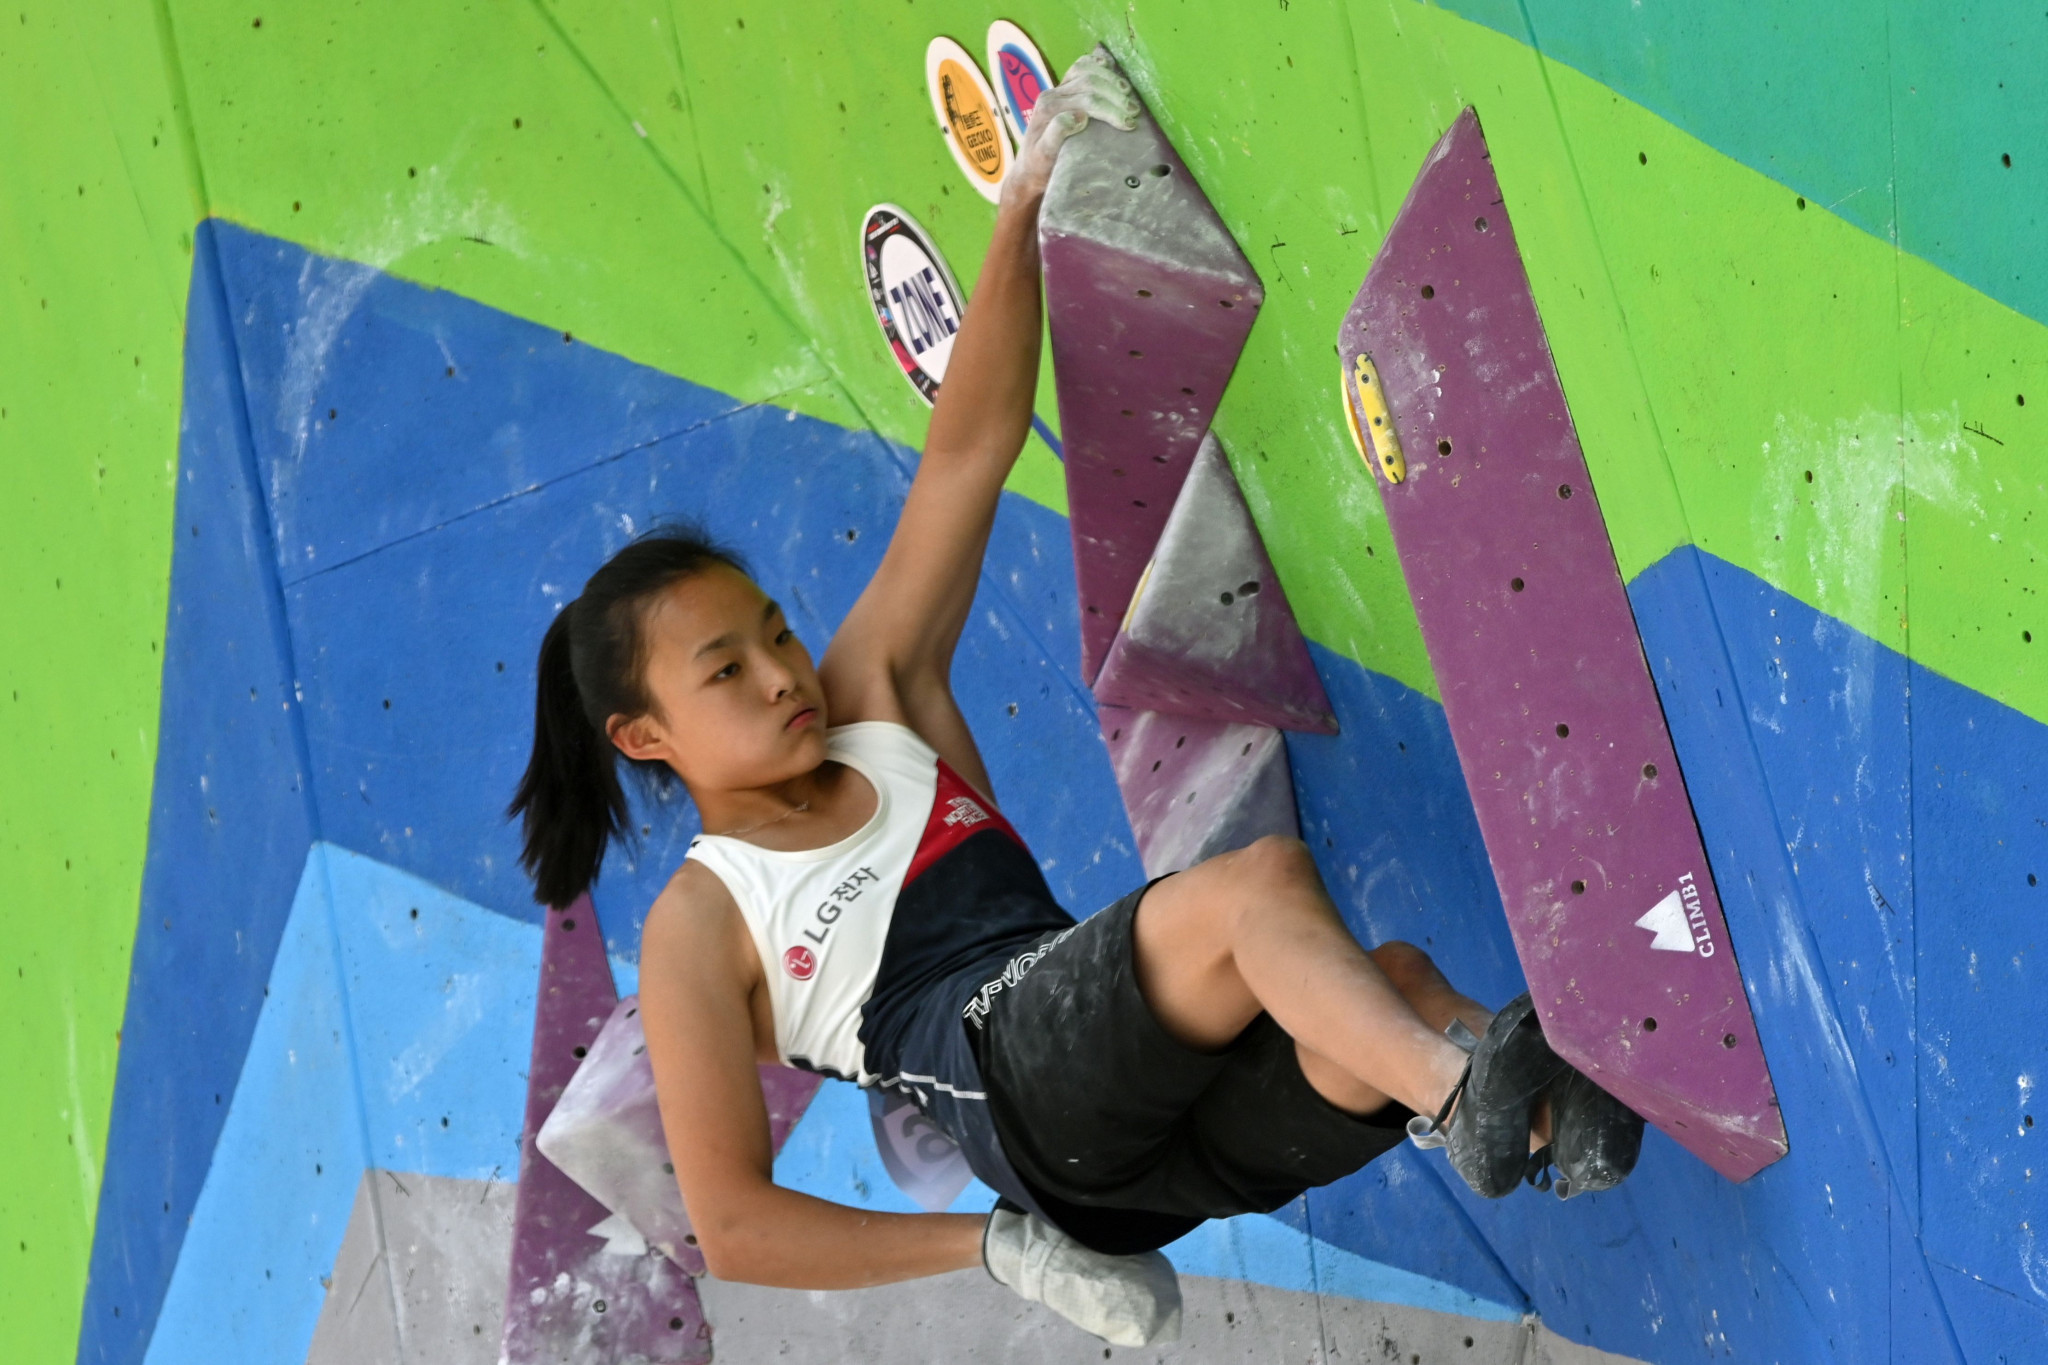 The 17-year-old Seo Chae-hyun was allocated a quota place for the Tokyo 2020 sport climbing contest ©Getty Images